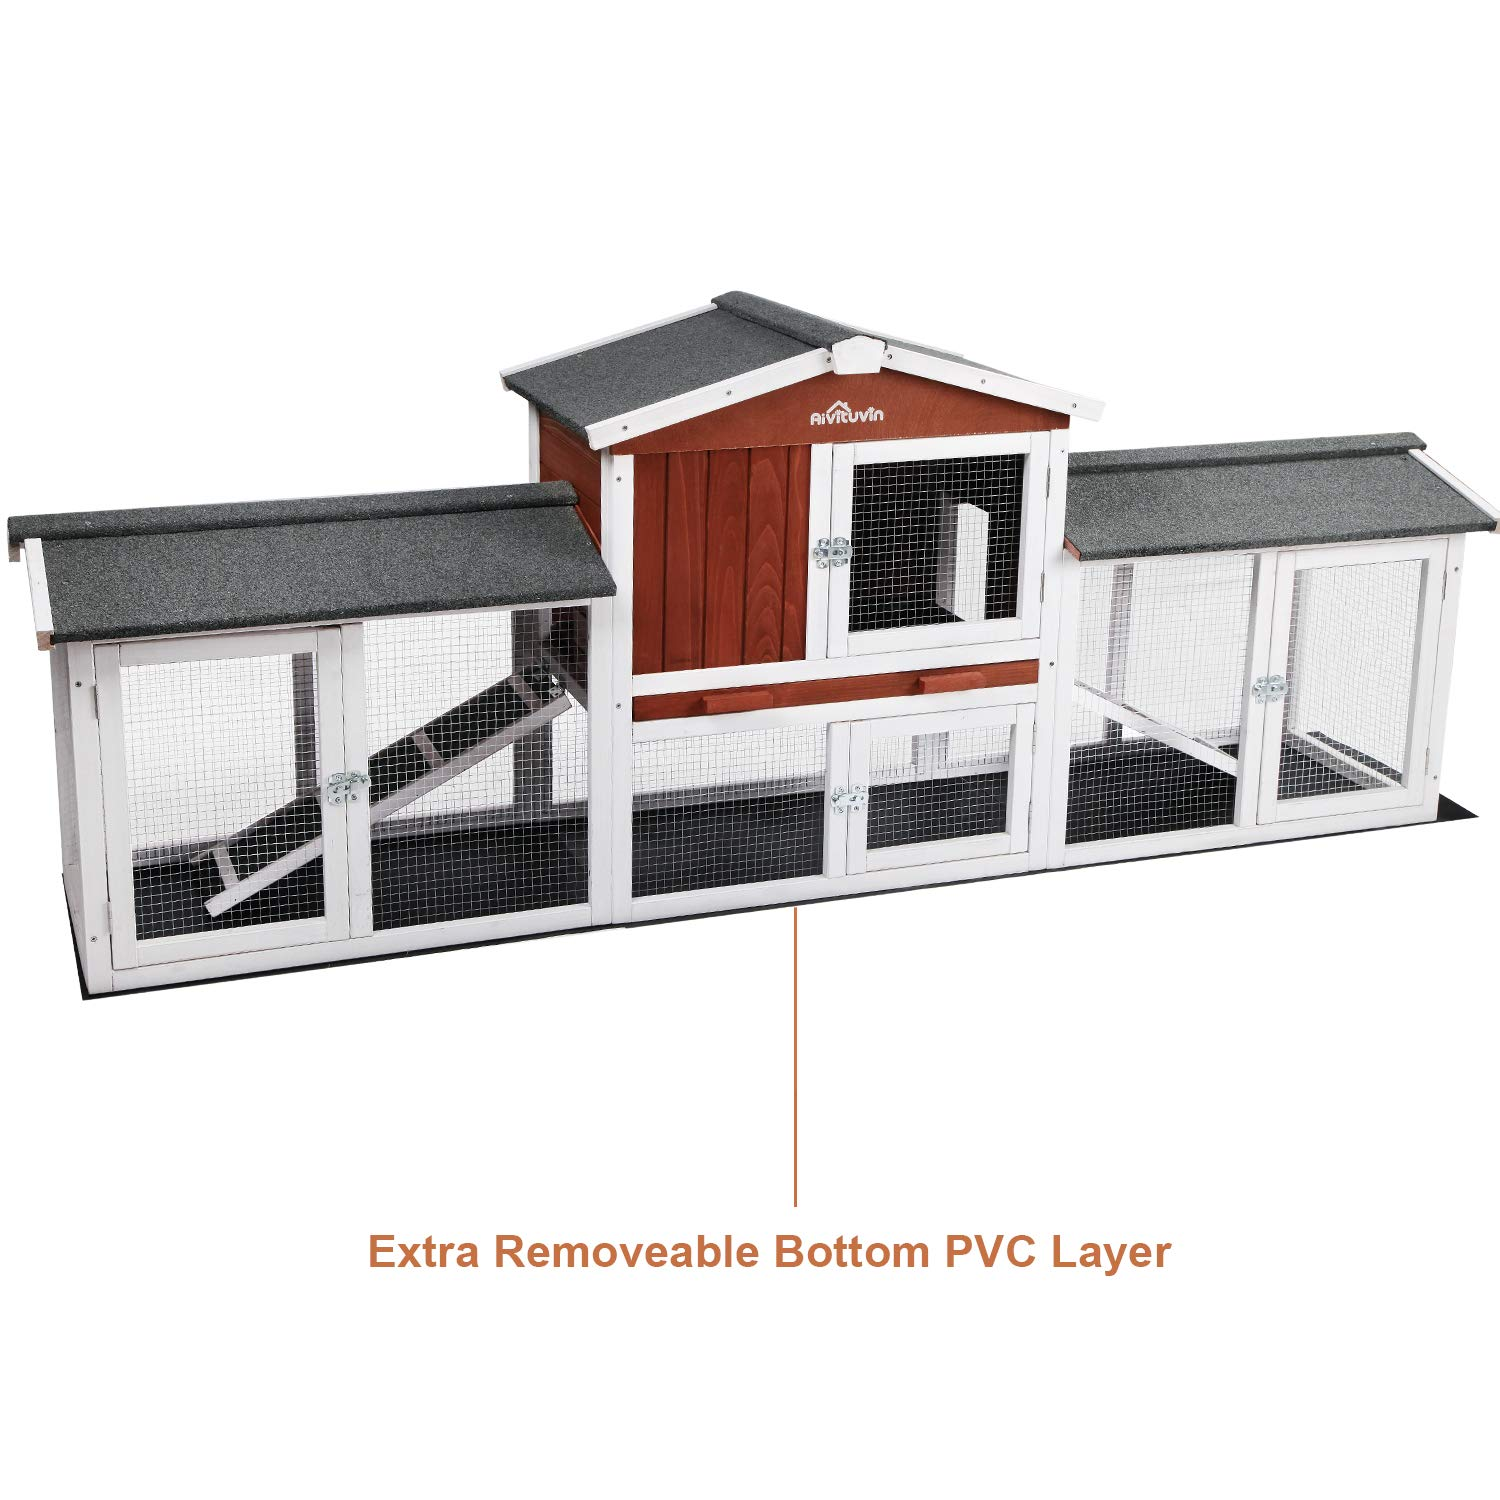 Aivituvin Extra Large en Coop, Rabbit House Wooden Hen House Outdoor on stone face house designs, house house designs, turkey house designs, duck house designs, hawk house designs, bird house designs, cat house designs, rabbit blueprints, small hog house designs, birdhouse house designs, rabbit engineering, flower house designs, wolf house designs, rabbit houses outdoor, crab house designs, faerie house designs, rottweiler dog house designs, ariel house designs, rabbit farming for profit, playing card house designs,